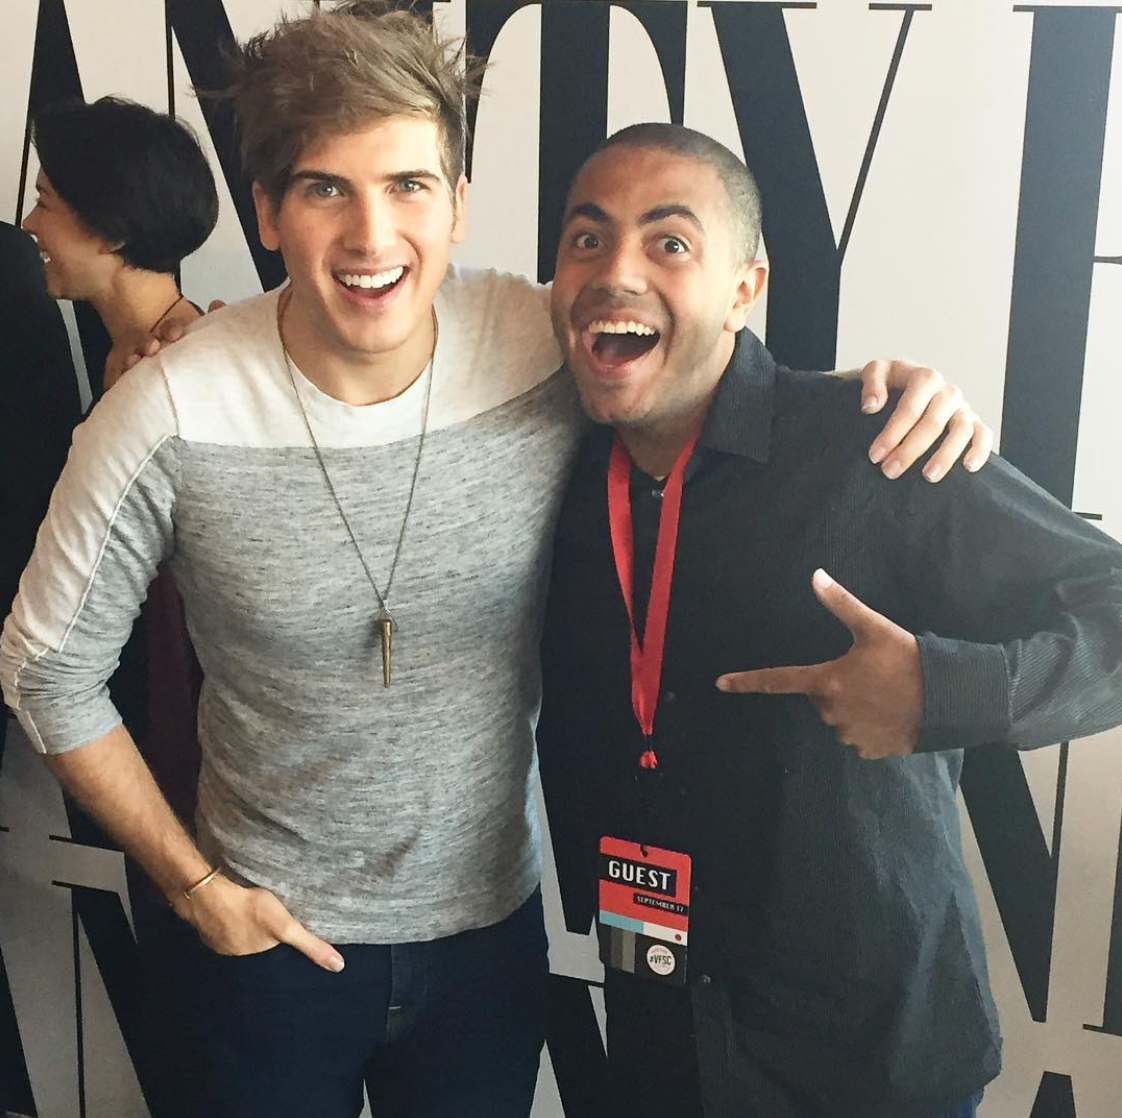 Alex with YouTube Star Joey Graceffa